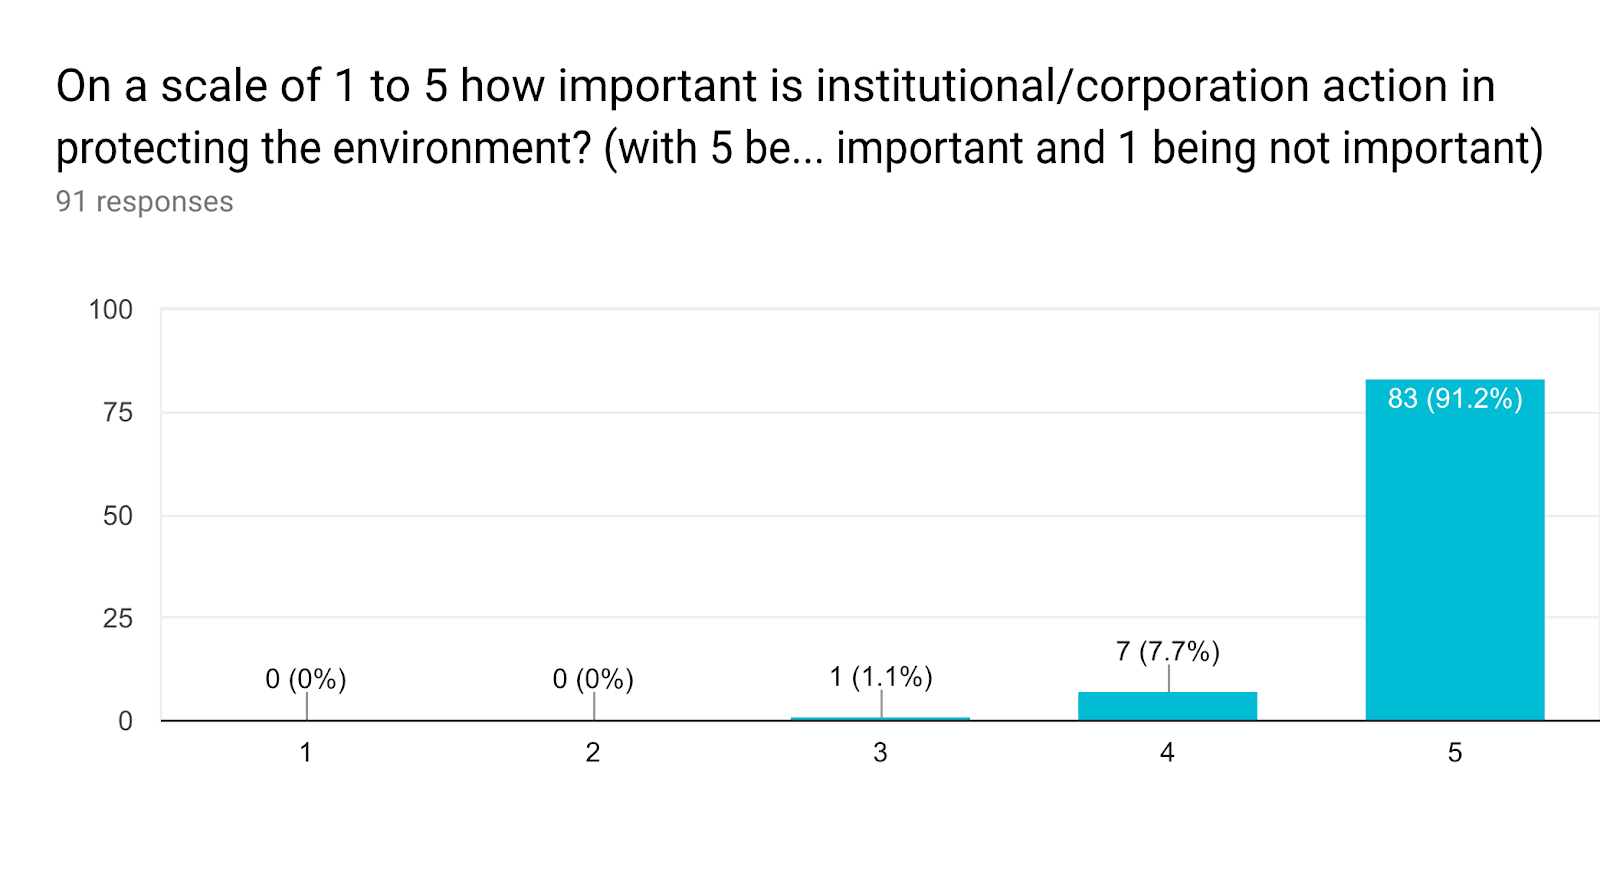 Forms response chart. Question title: On a scale of 1 to 5 how important is institutional/corporation action in protecting the environment? (with 5 being very important and 1 being not important). Number of responses: 91 responses.